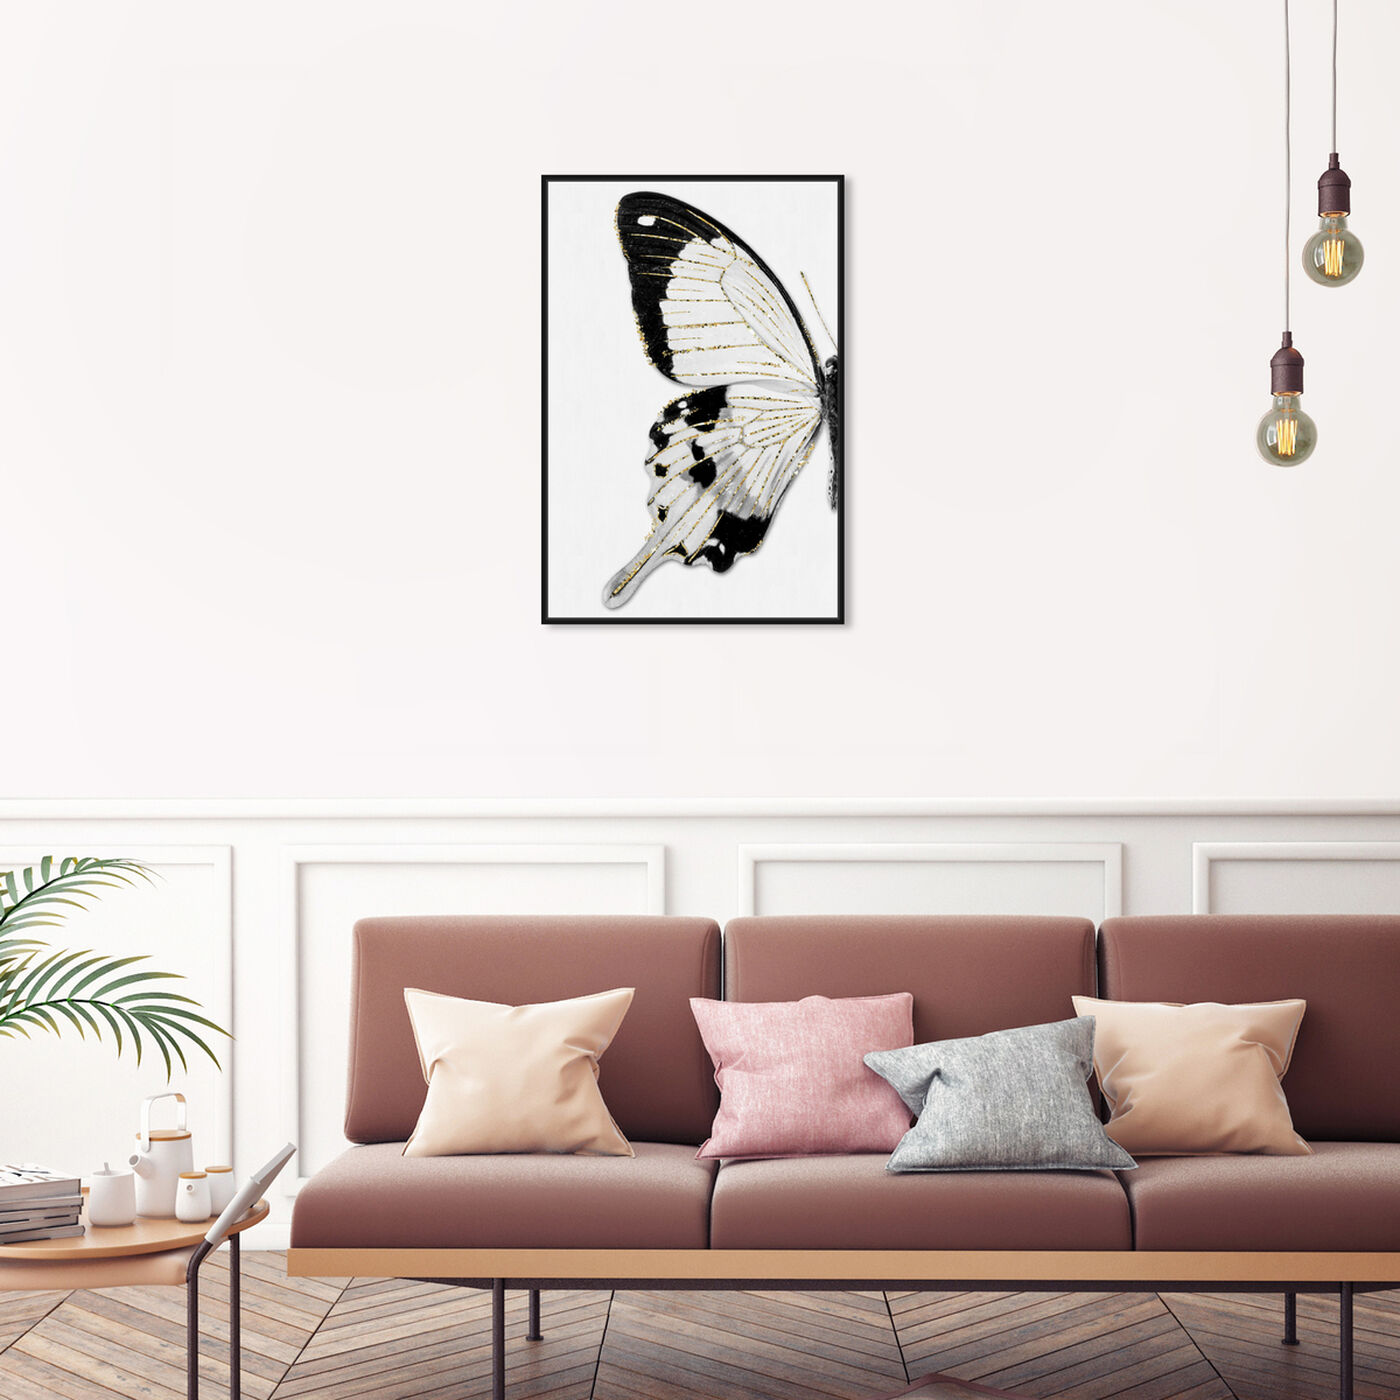 Hanging view of Monochrome Glitter Butterfly II featuring animals and insects art.